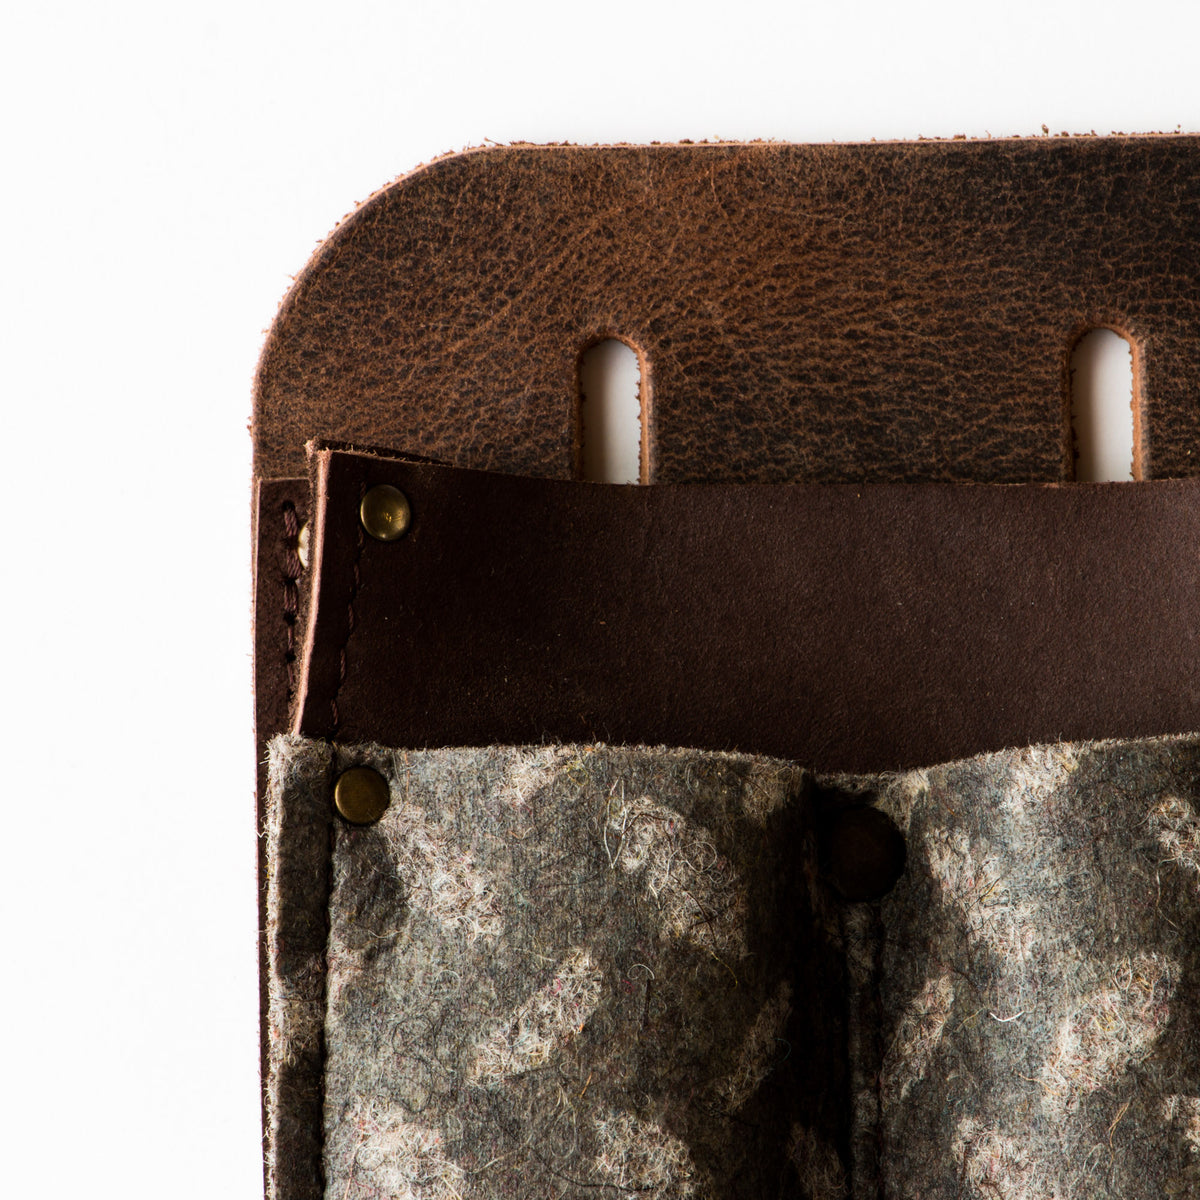 Detail - Top View - Leather & Felt Tool Holder / Pouch - Handmade in Canada - Chic & Basta